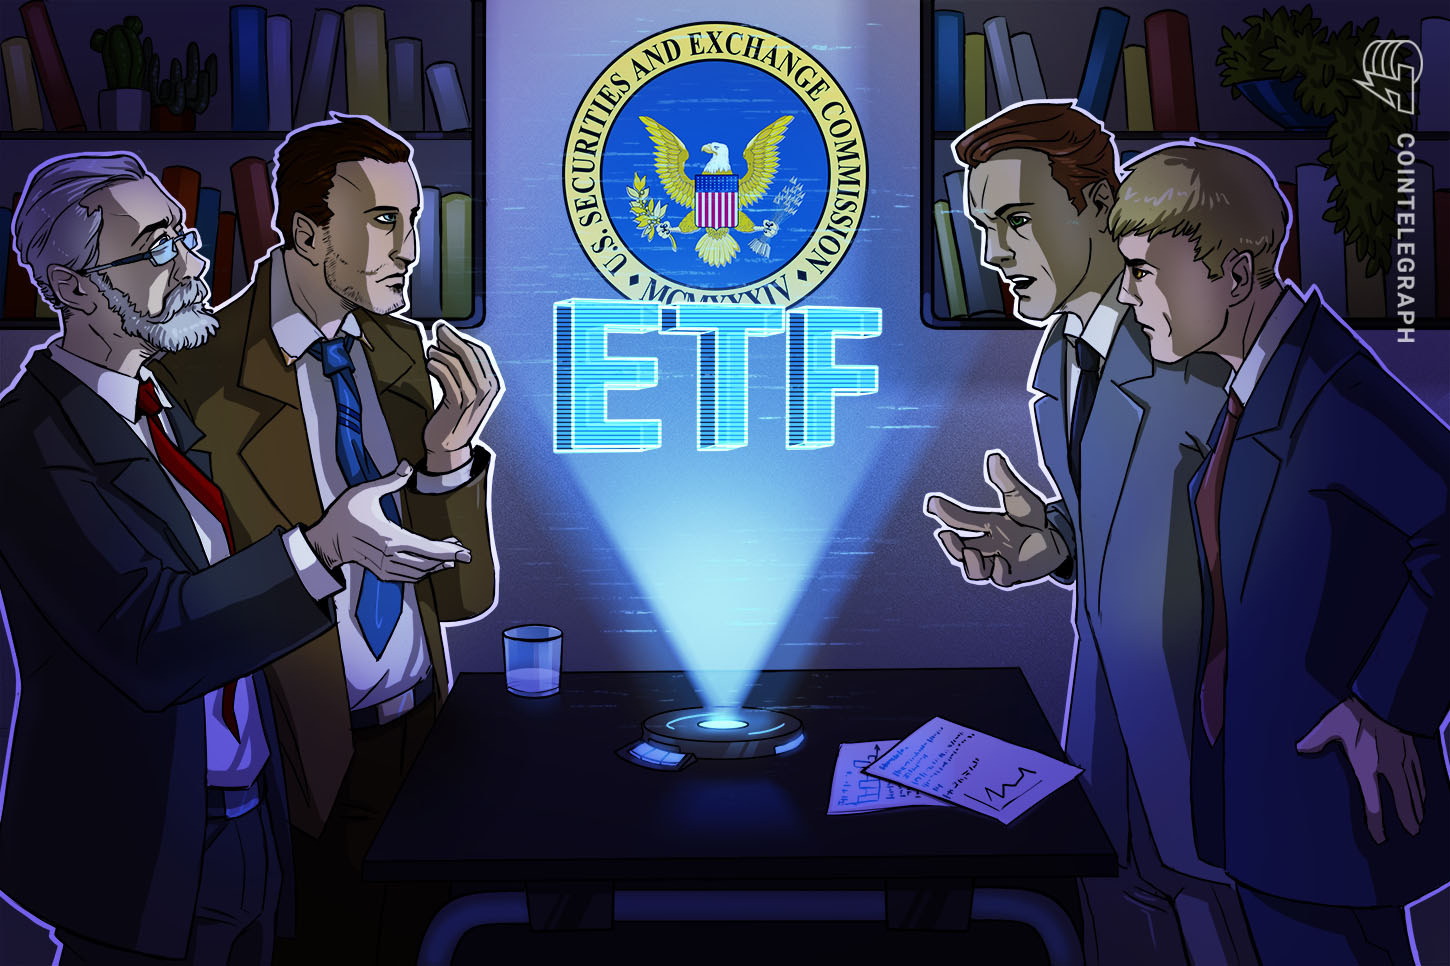 Fund management firm Global X files with SEC for Bitcoin ETF